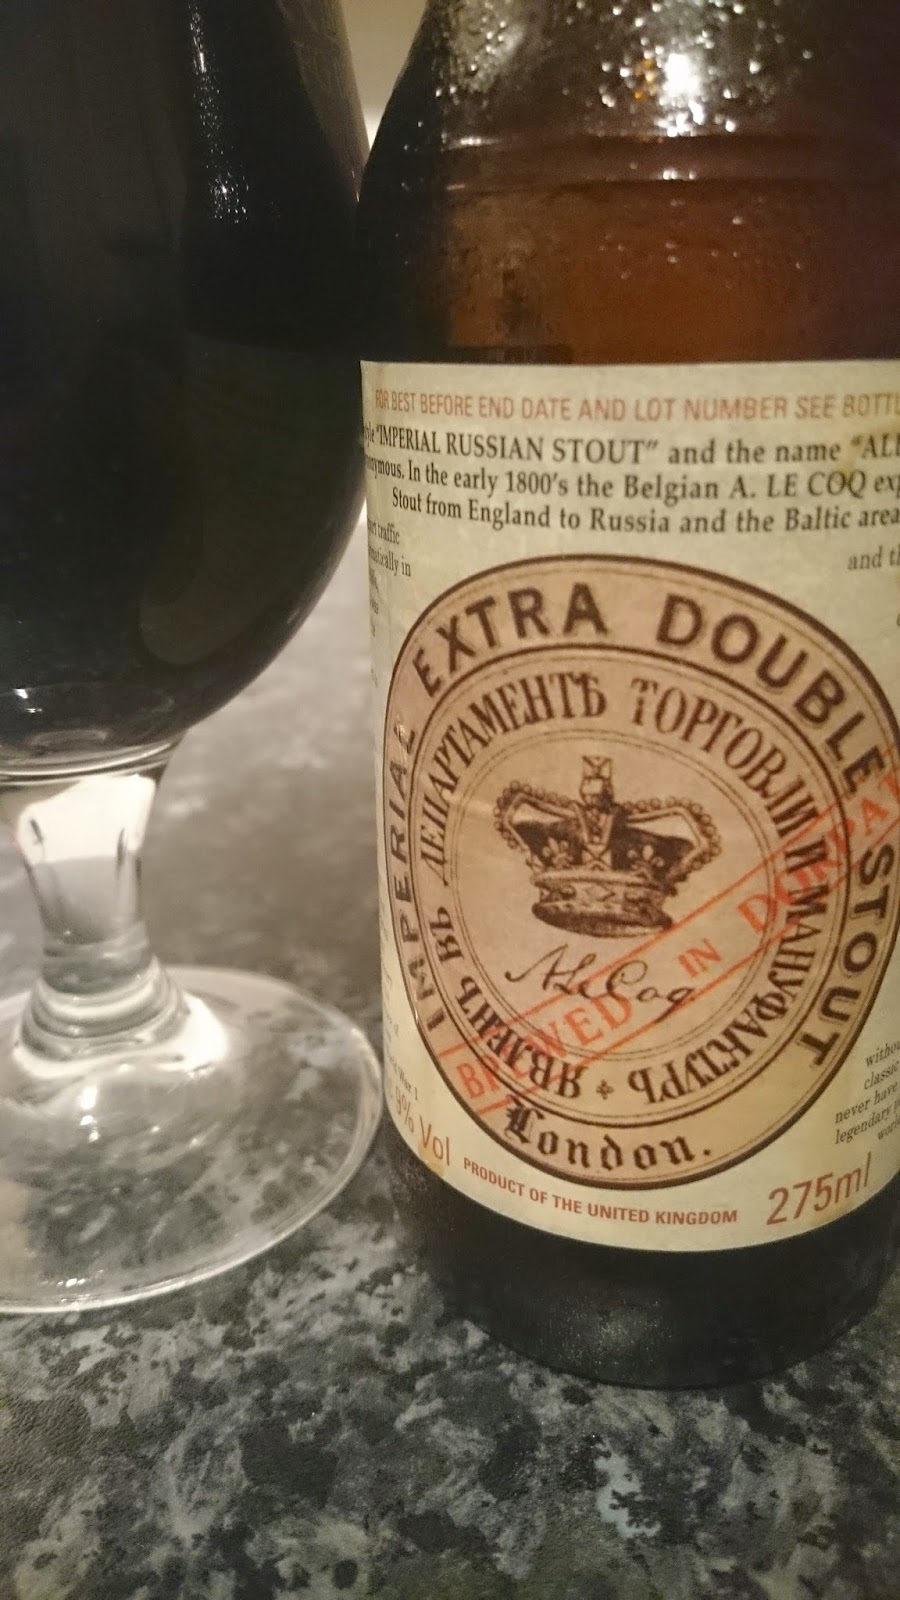 Extra Double Stout